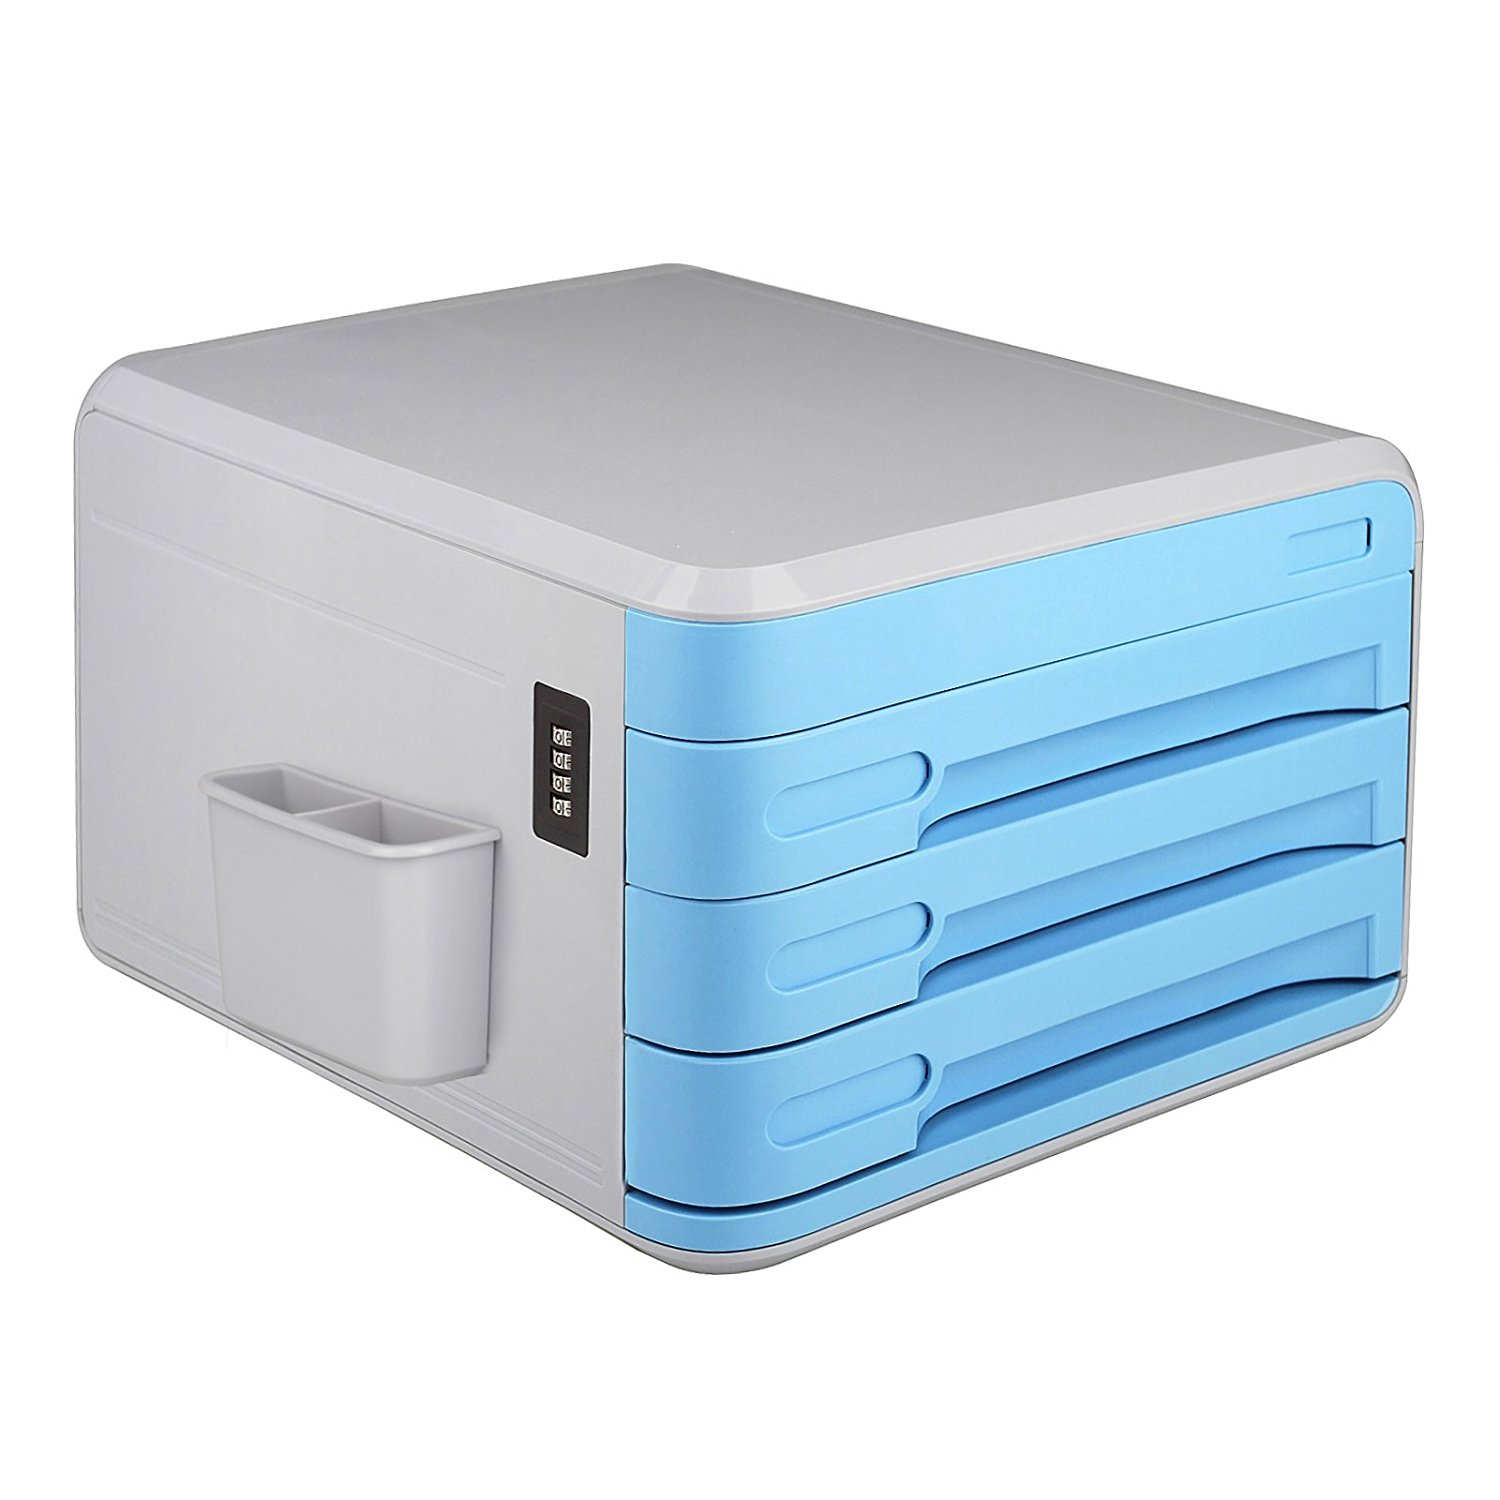 Office Lockable Cabinets Compare Prices On Lockable Office Cabinet Online Shopping Buy Low